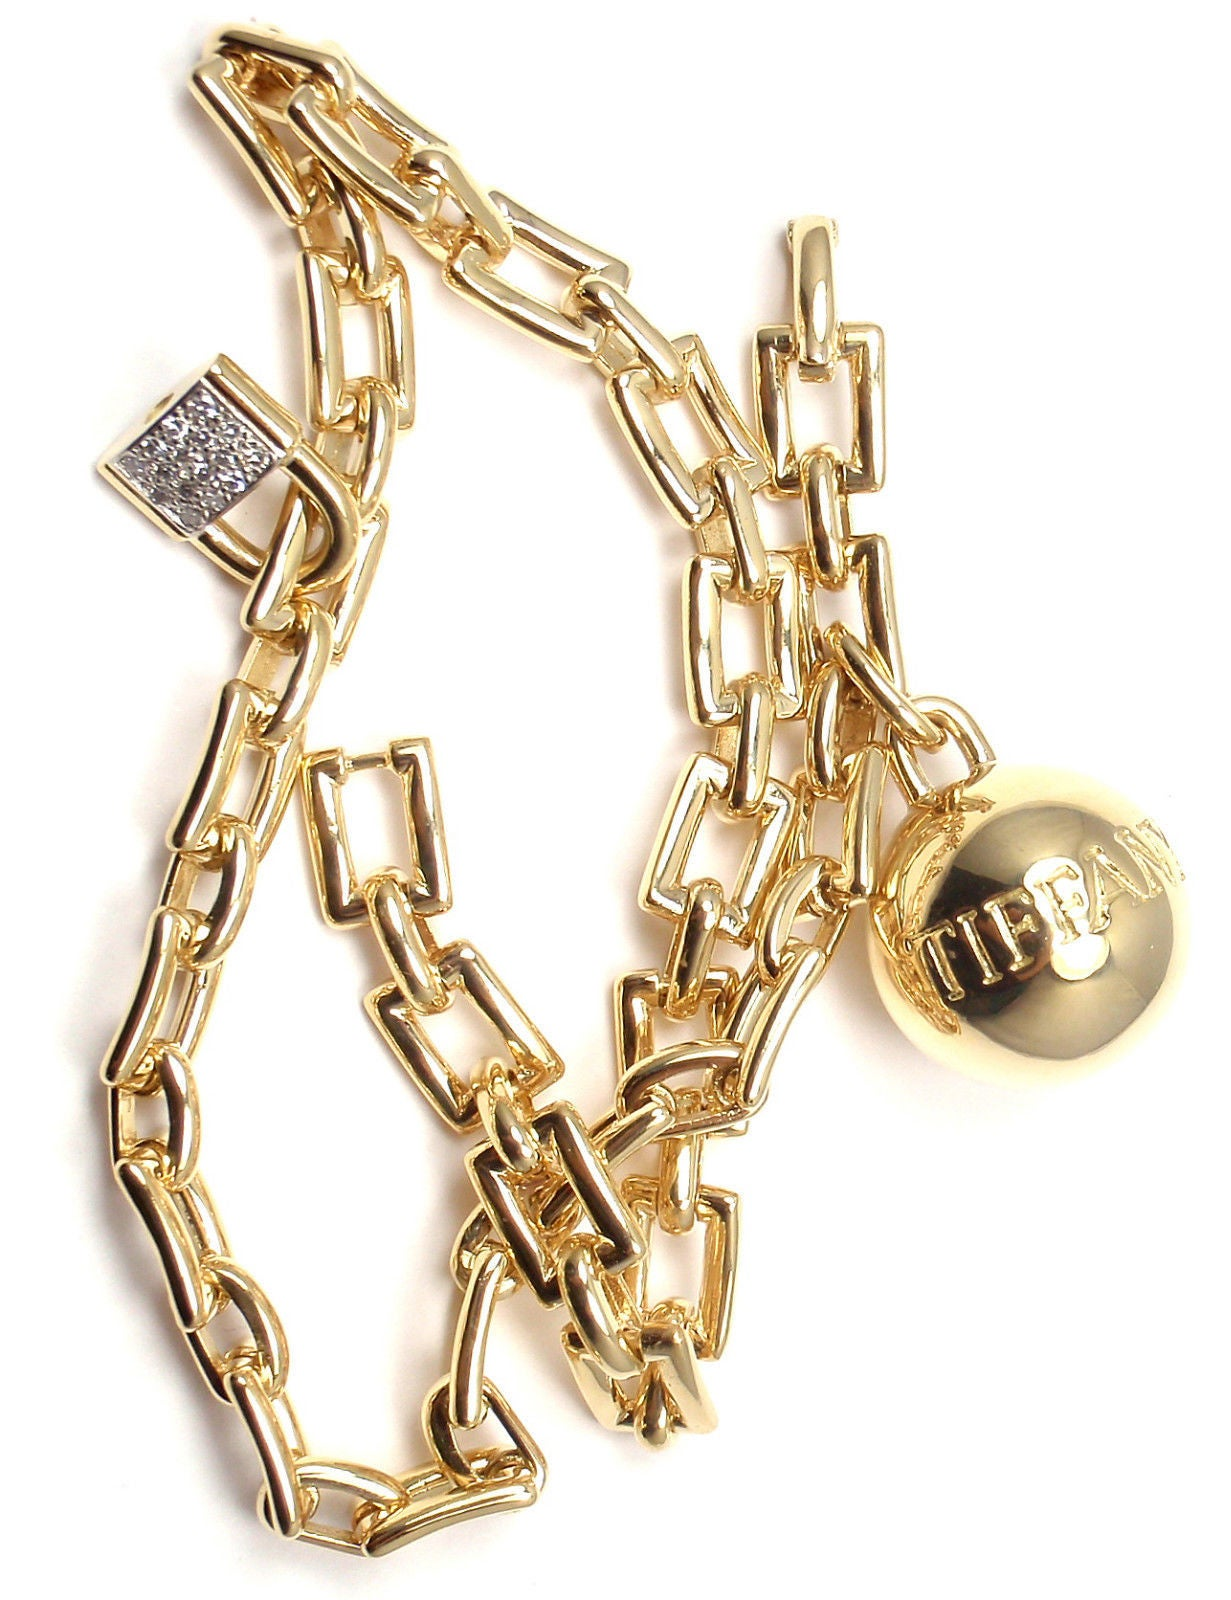 Tiffany & Co. Diamond Ball and Chain Yellow Gold Link Bracelet For Sale 5